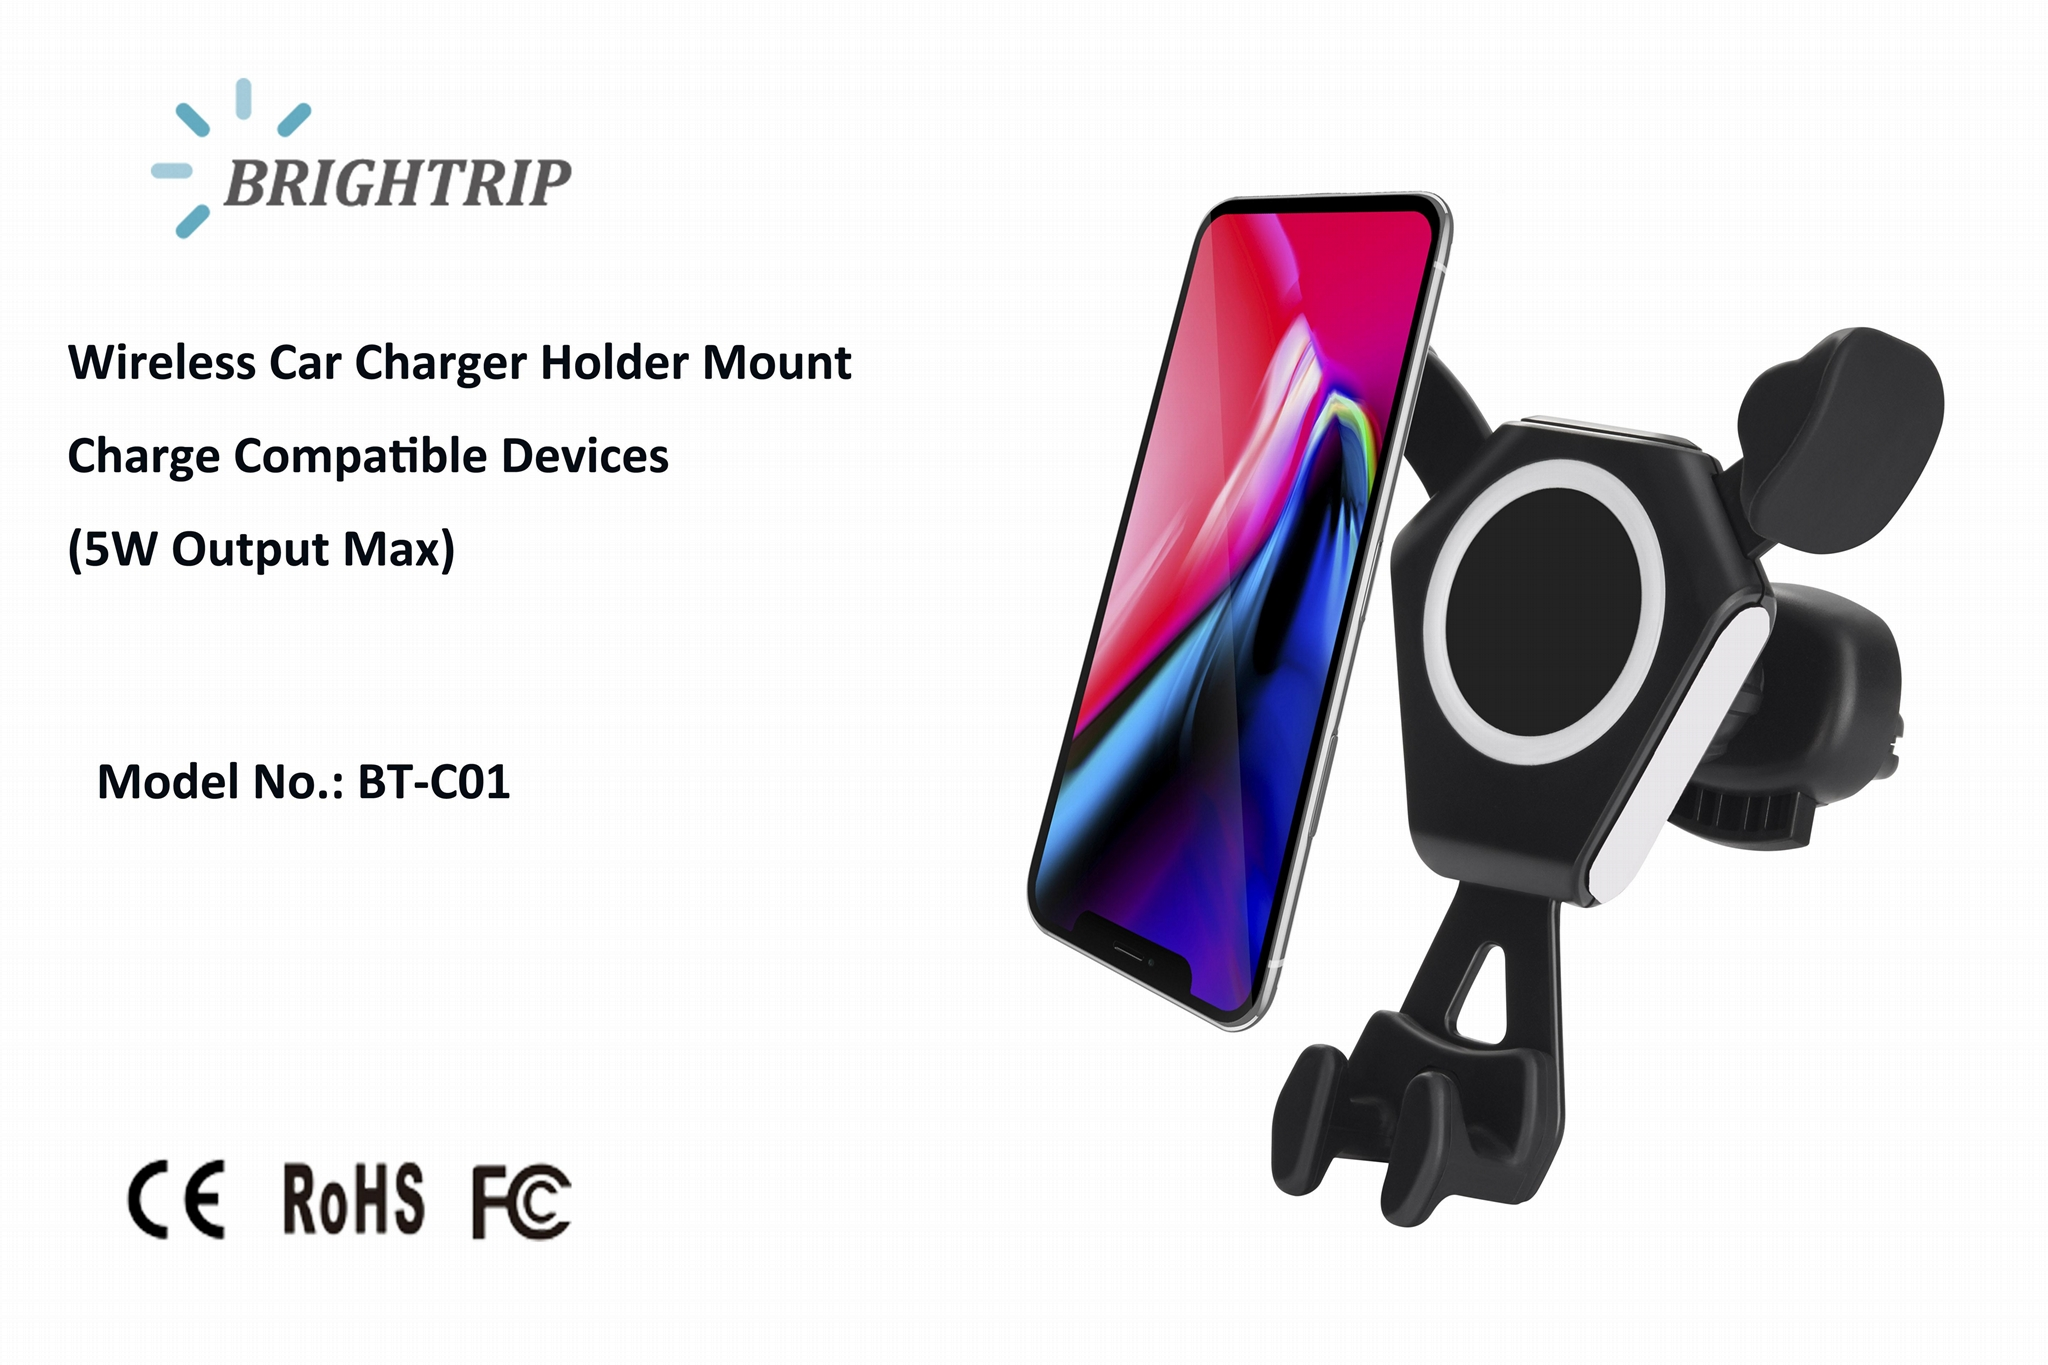 QI Wireless Car Charger (5W Output Max) 1